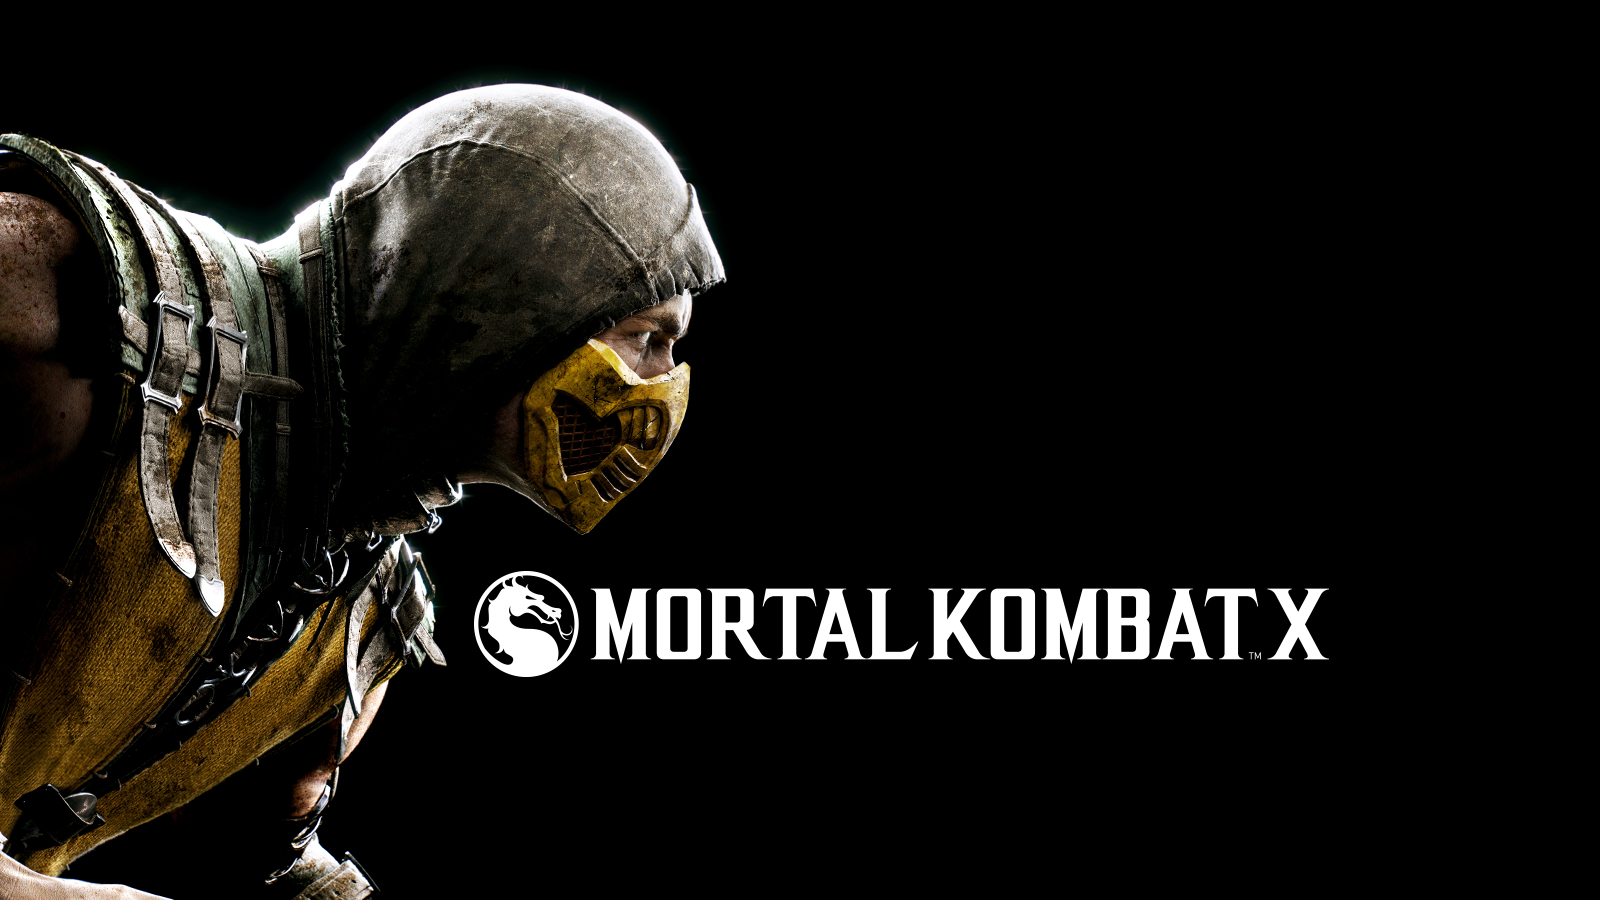 Download Mortal Kombat X For Android